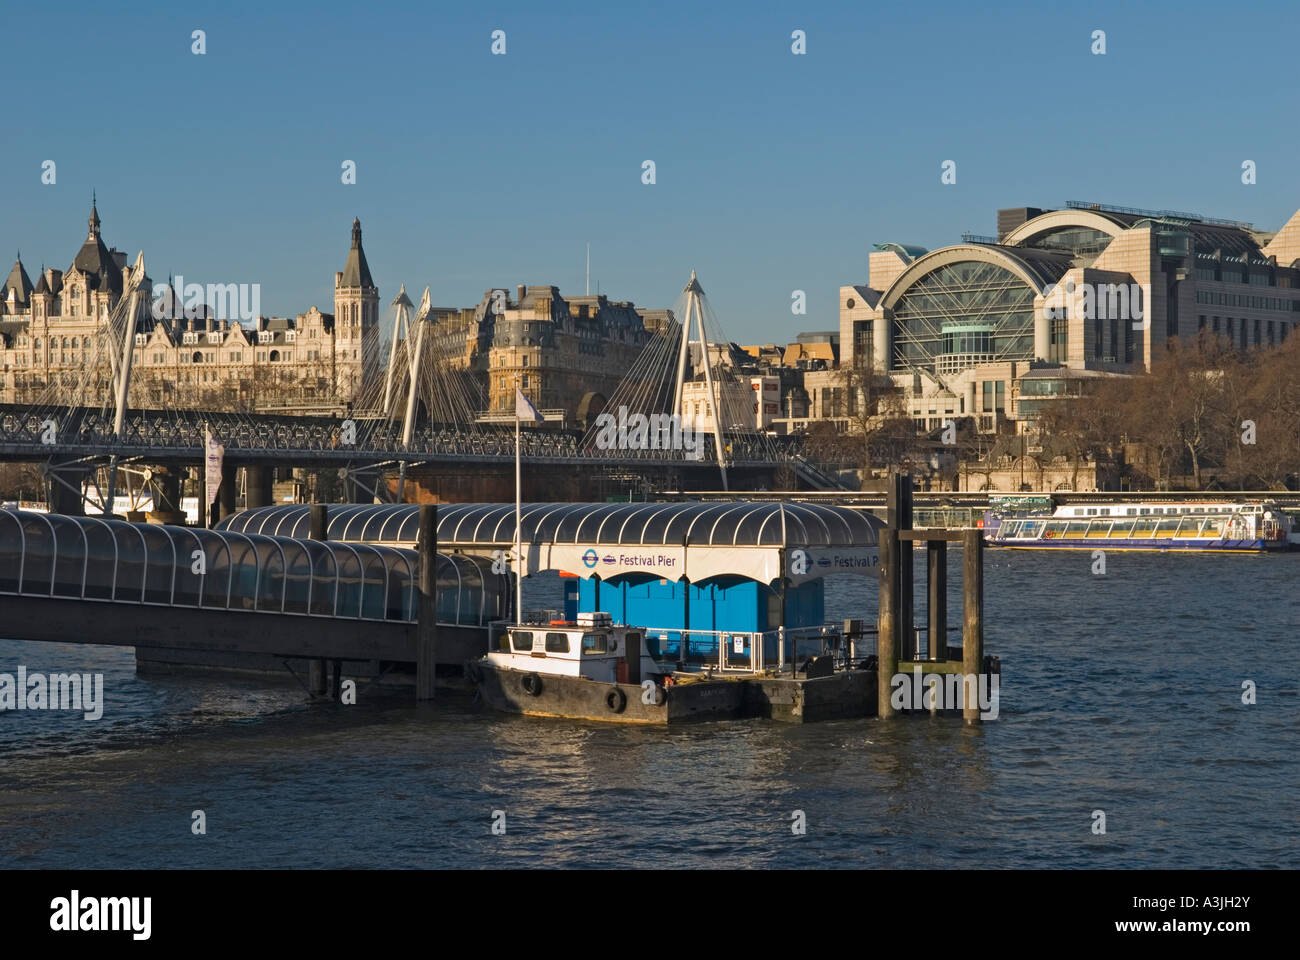 New Hungerford Foot Bridge and Charing Cross Station London UK - Stock Image